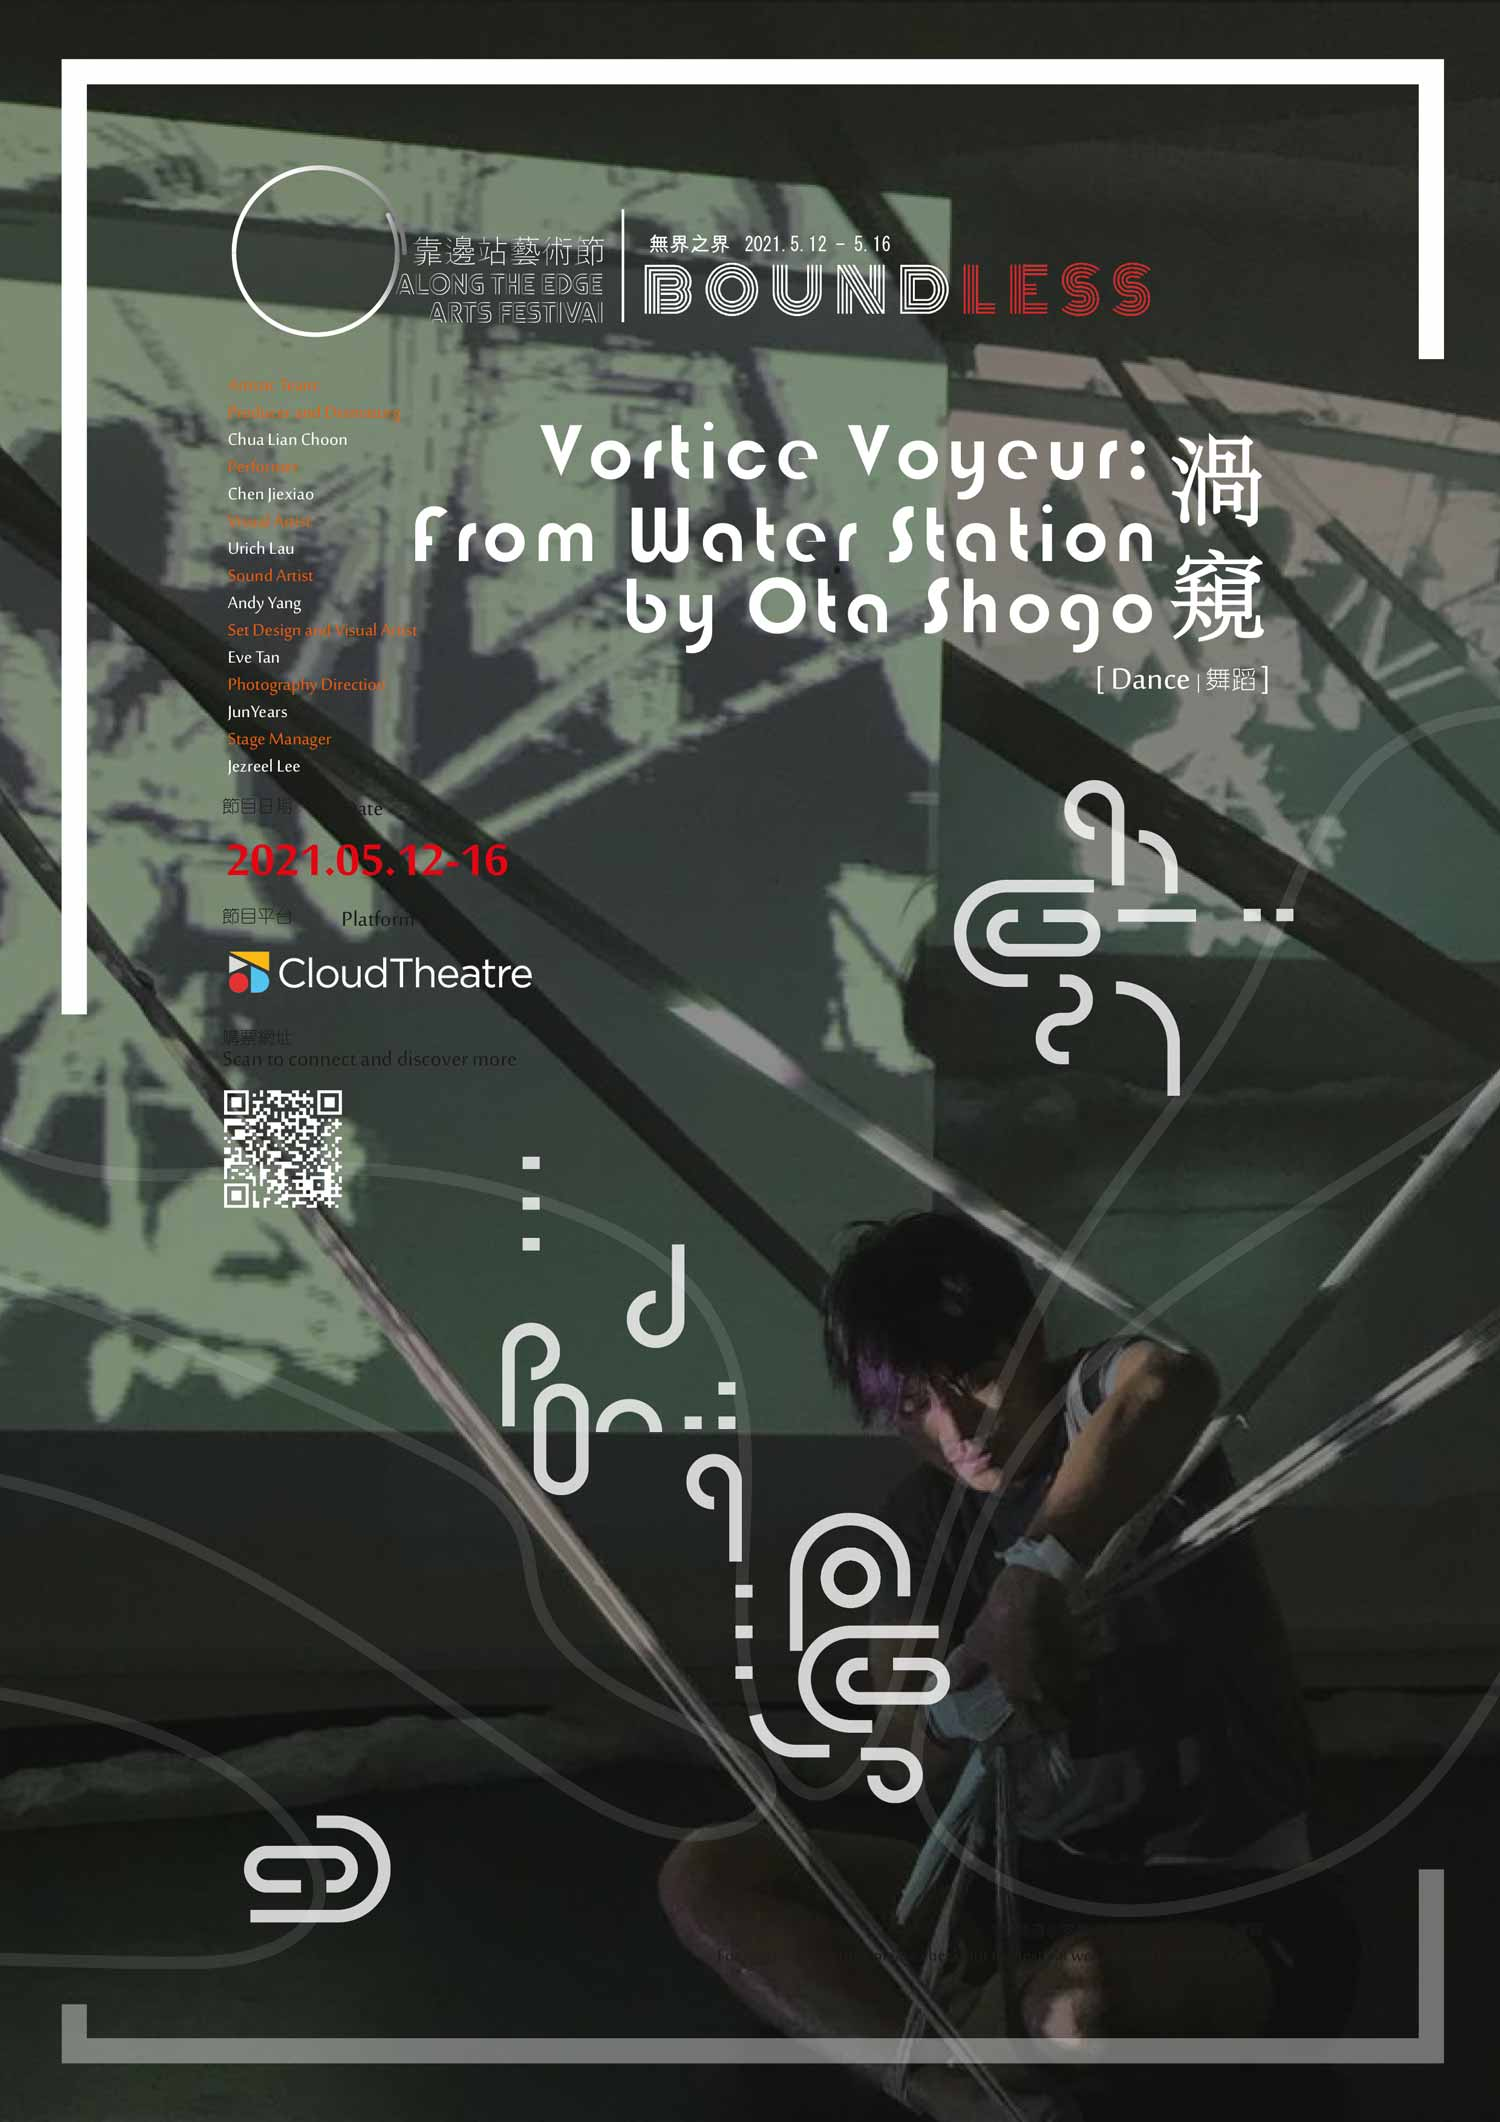 Vortice Voyeur: From Water Station, by OtaShogo 渦窺